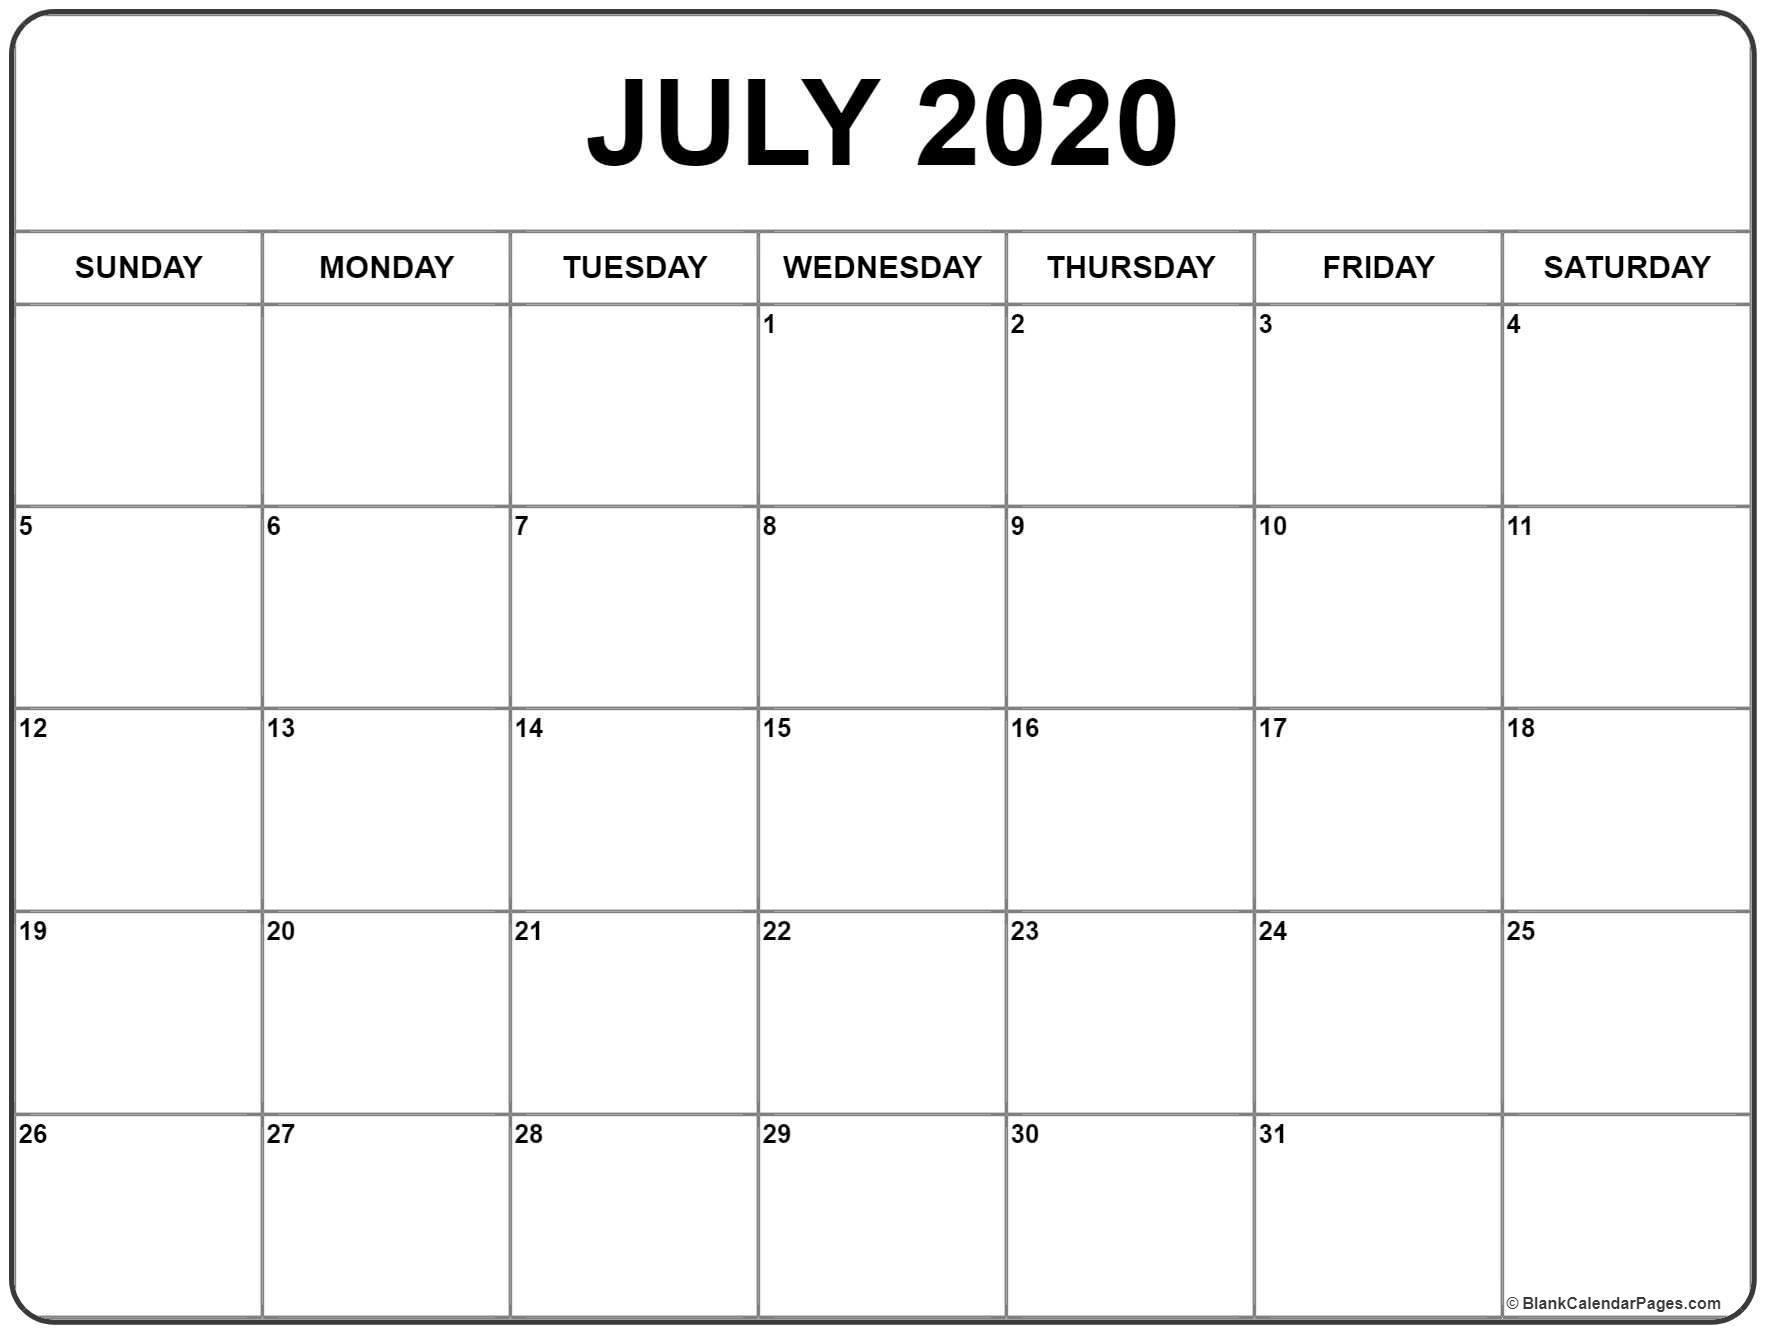 July 2020 Calendar | Free Printable Monthly Calendars pertaining to Free Printable Calendar With Space To Write